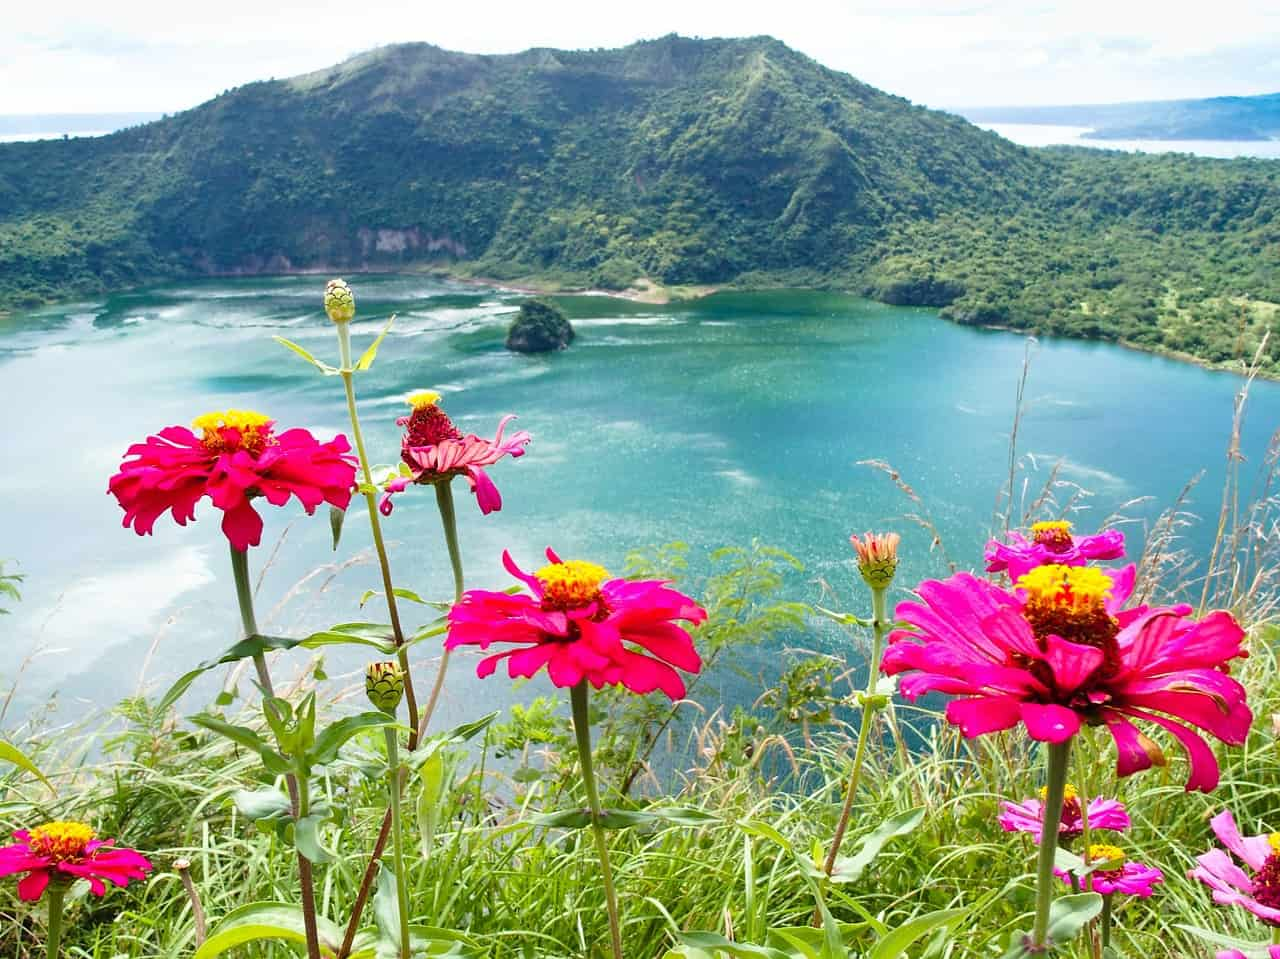 Taal Lake, formerly known as Bombón Lake, is a freshwater volcanic crater lake in the province of Batangas, on the island of Luzon in the Philippines.